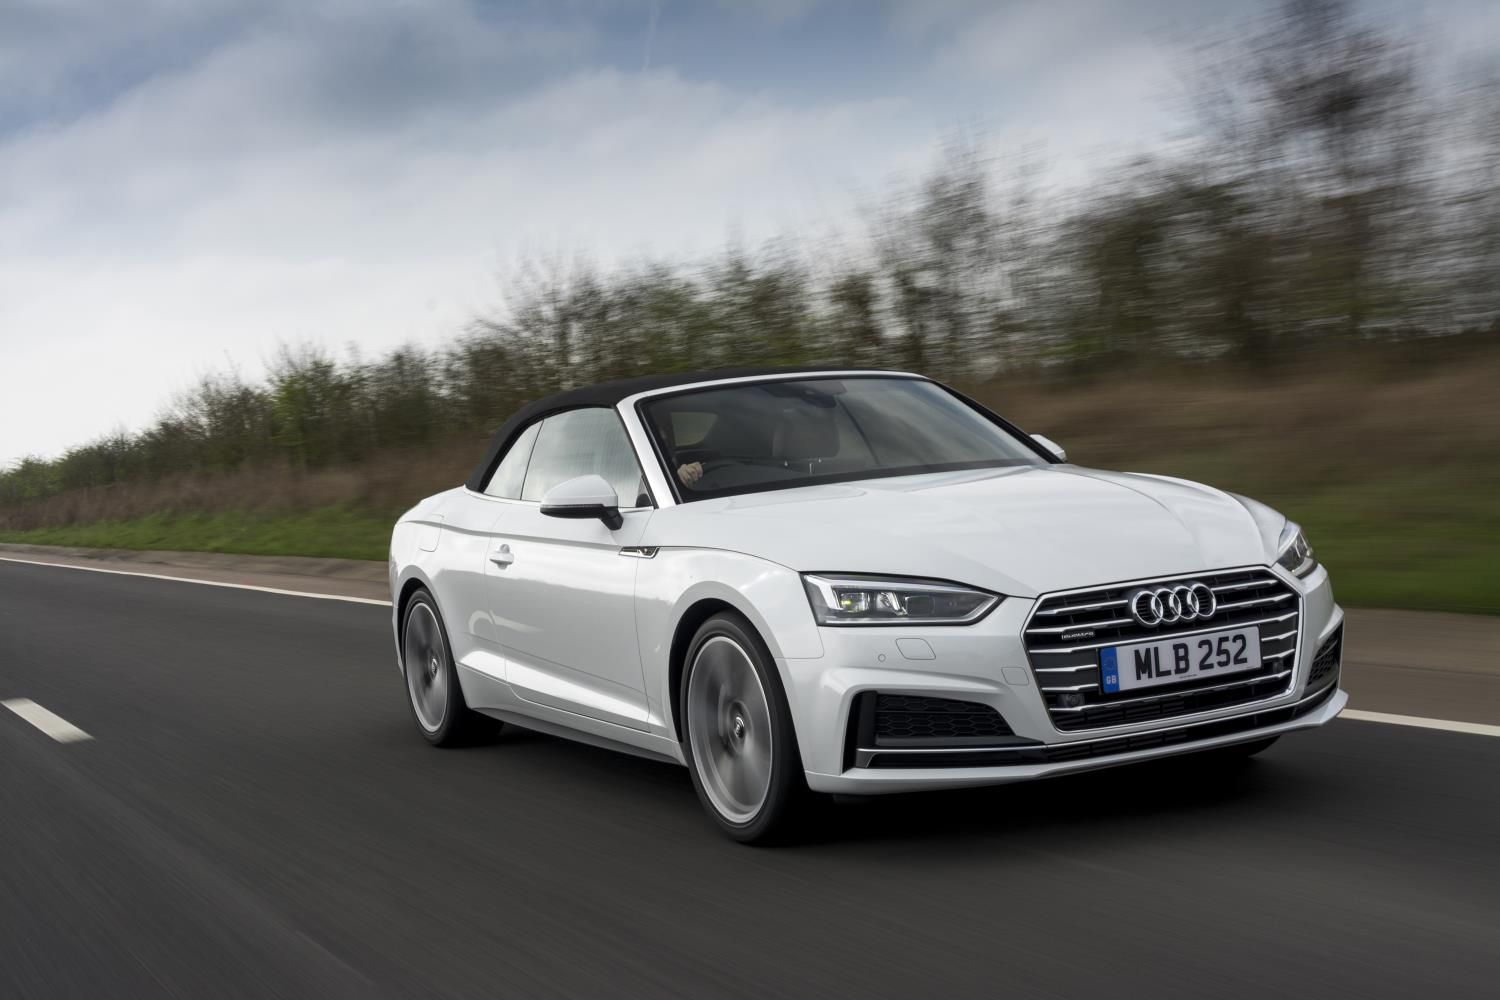 White Audi A5 Cabriolet with the roof down driving towards you on an open road